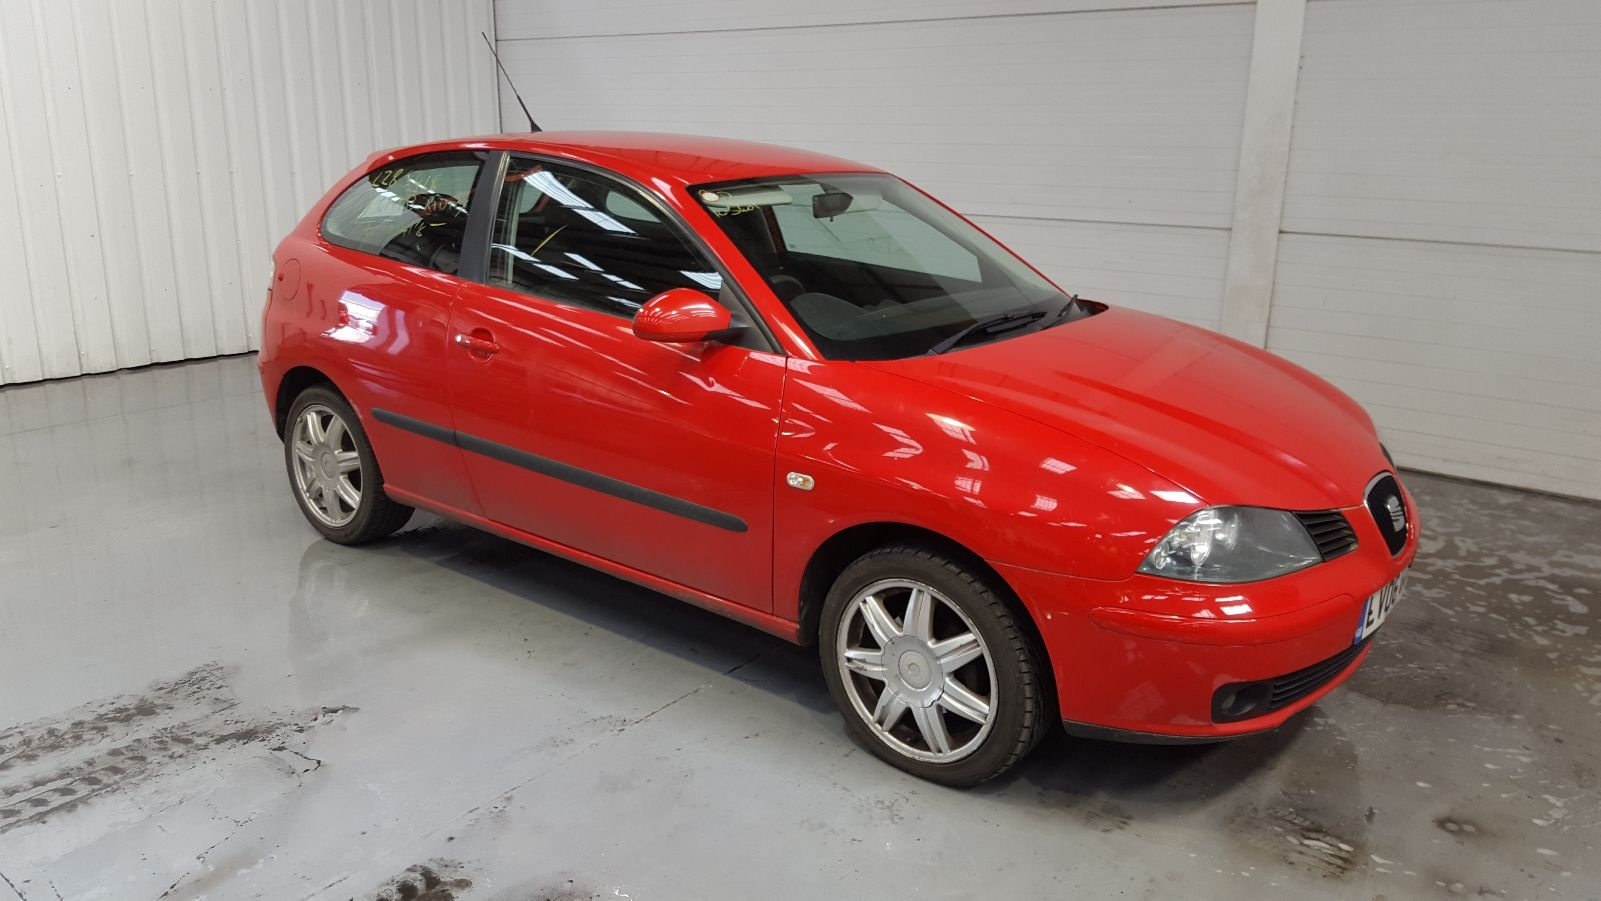 Image for a 2006 Seat Ibiza 1.4 Petrol BKY Engine